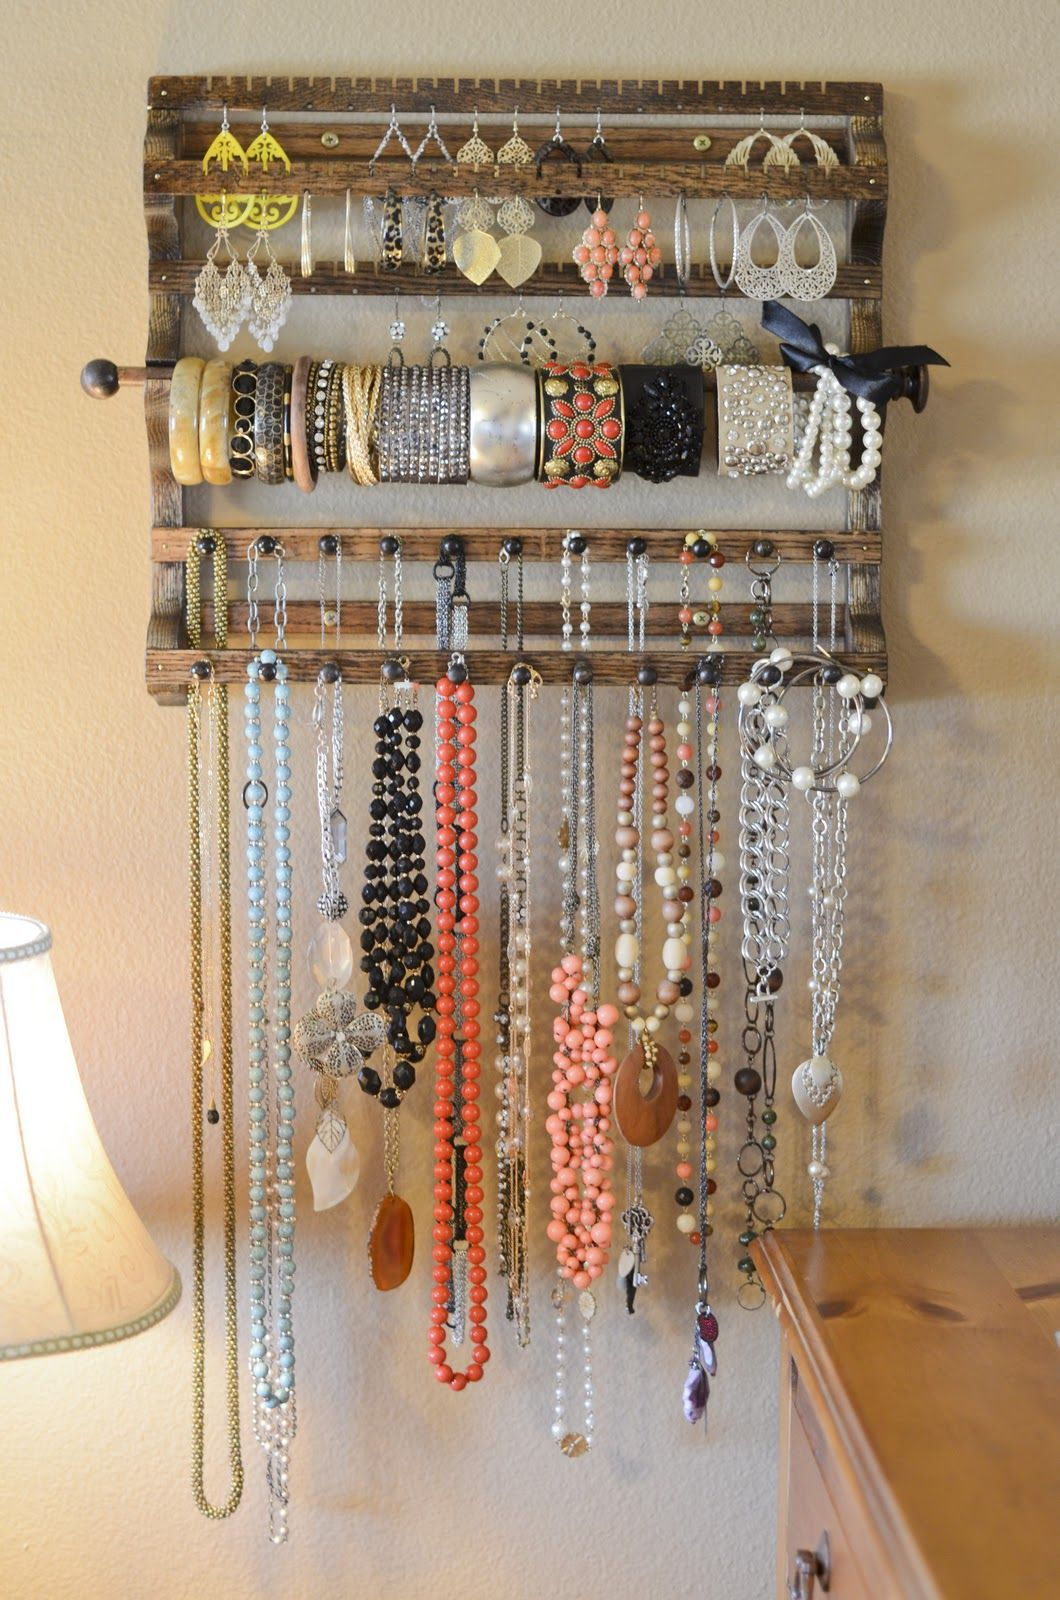 Hanging wooden jewelry holder from Spirit Ranch Creations on Etsy